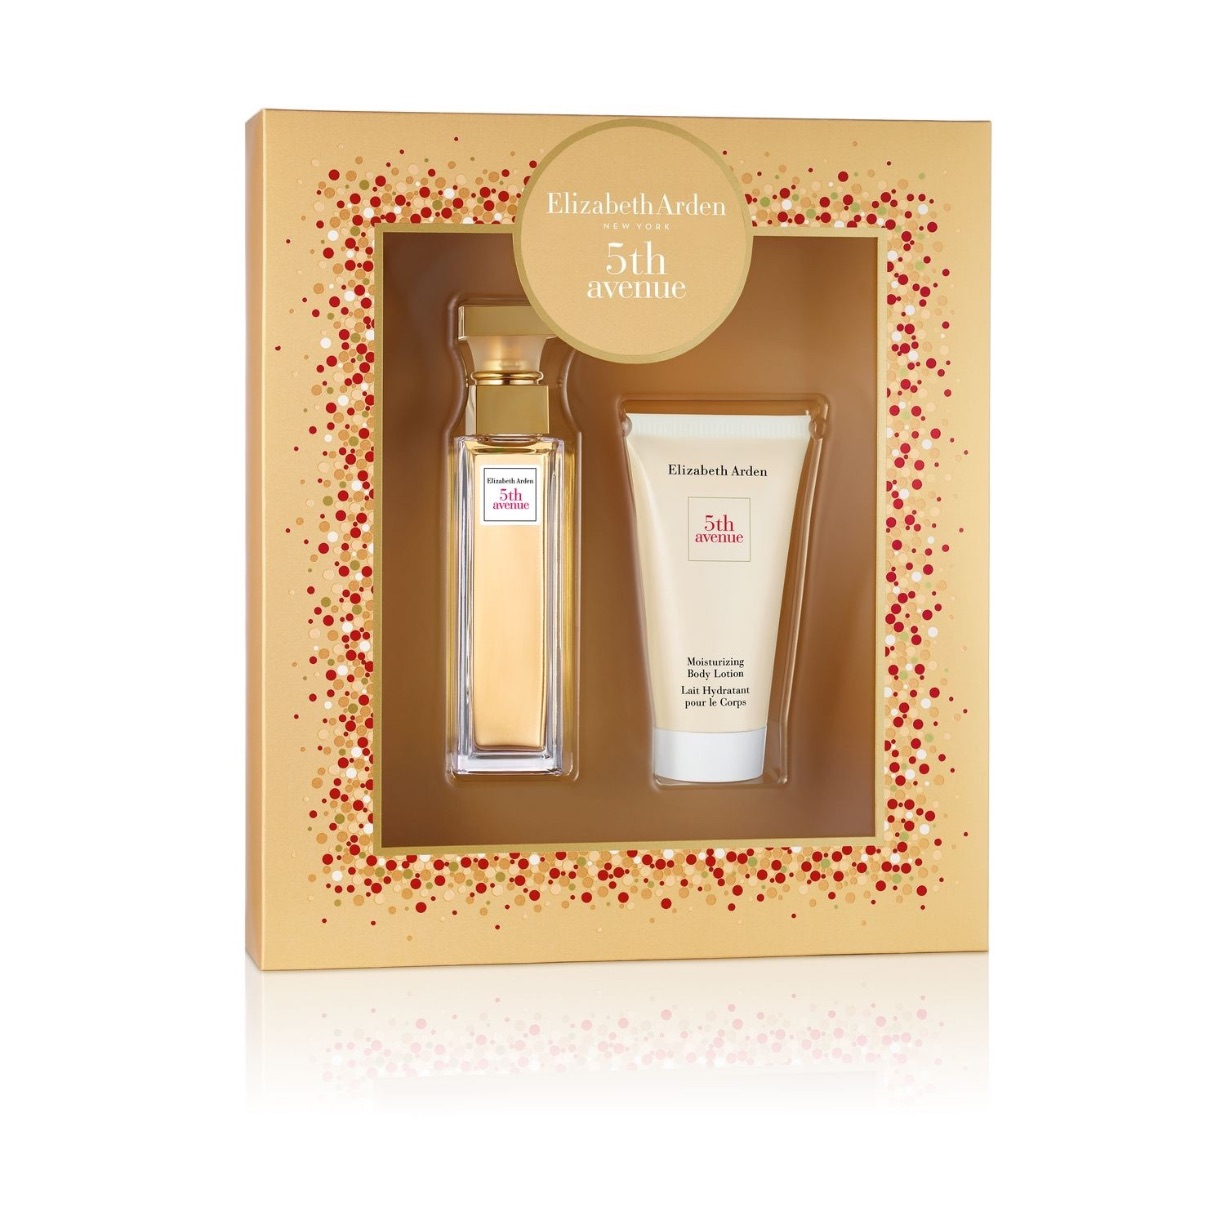 Elizabeth Arden 5th Avenue Eau de Parfum 30ml 2018 Gift Set